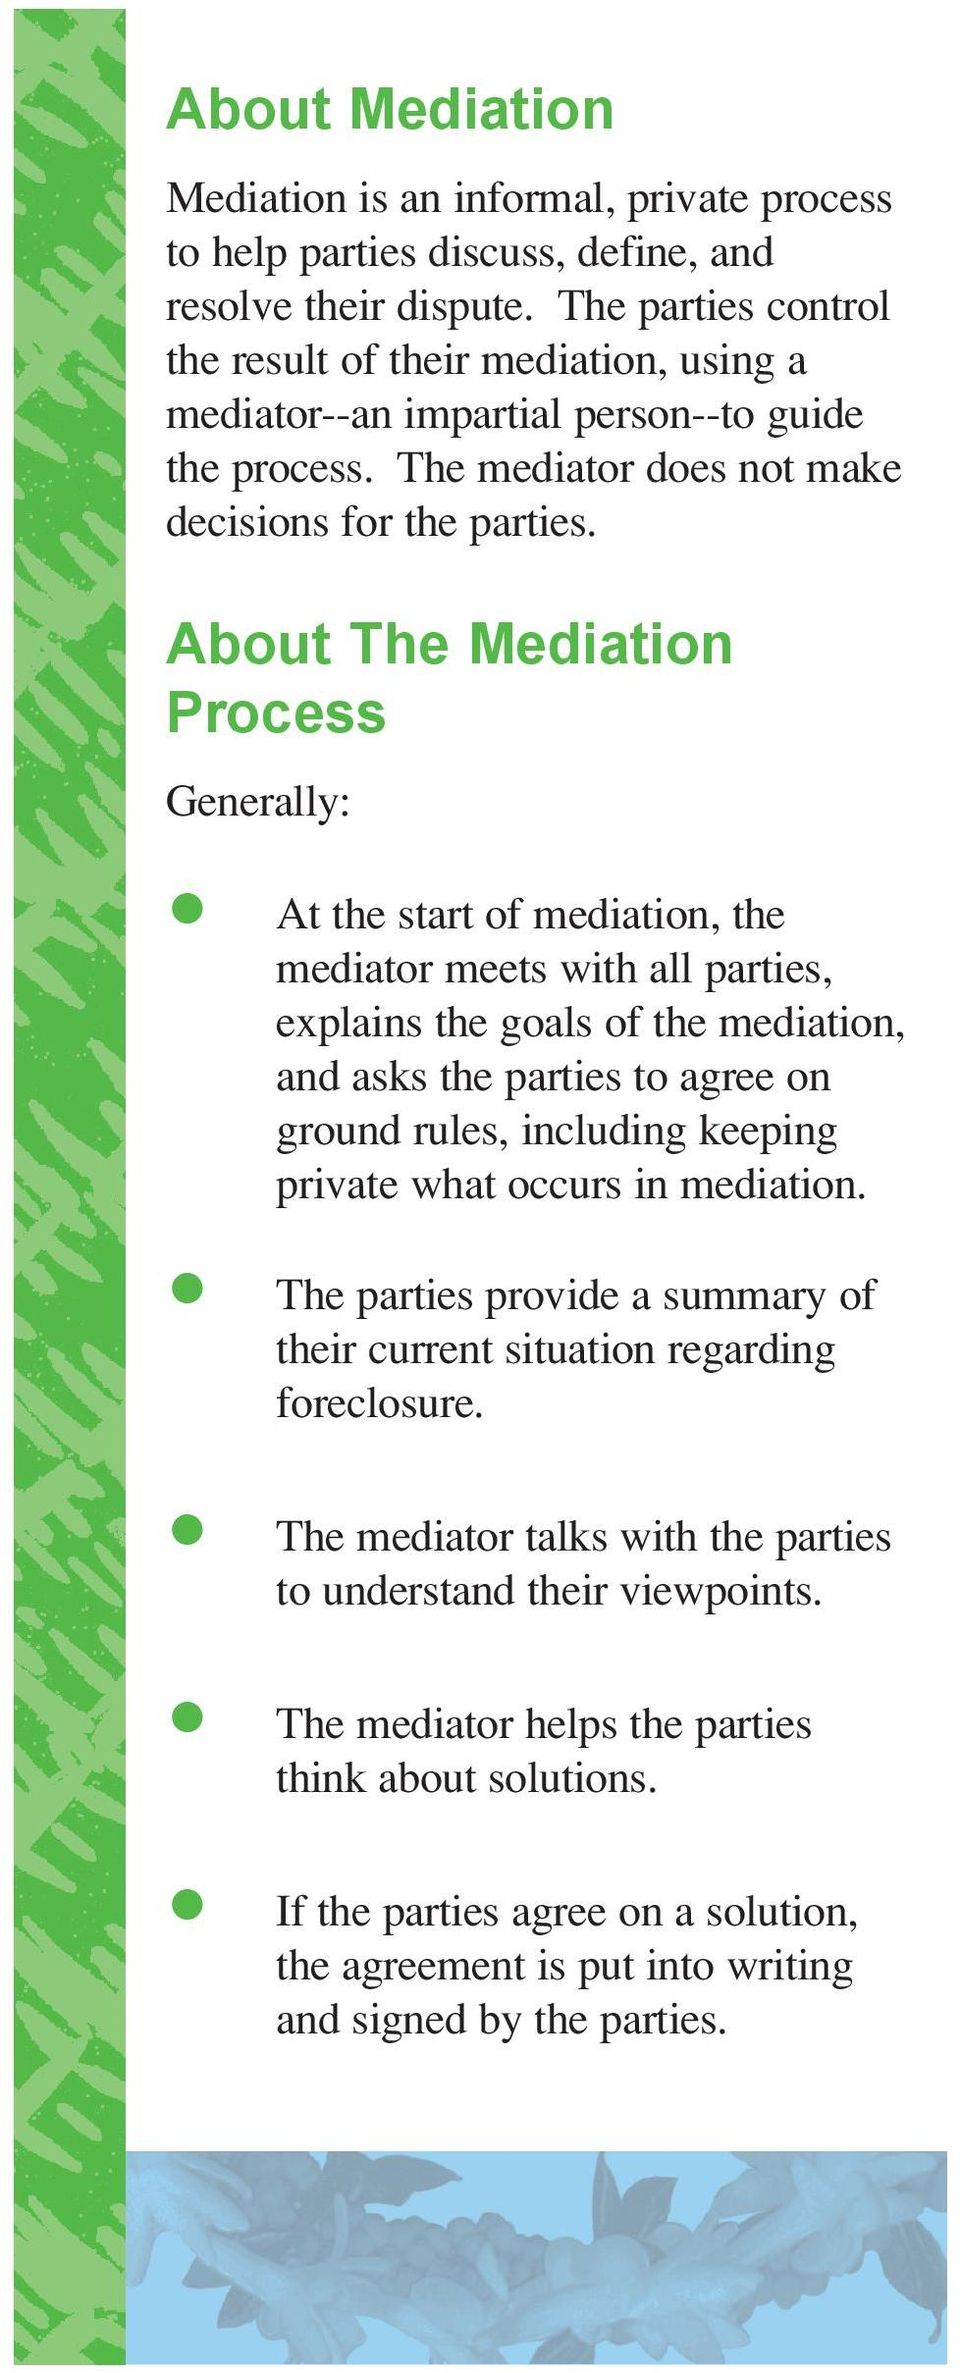 About The Mediation Process Generally: At the start of mediation, the mediator meets with all parties, explains the goals of the mediation, and asks the parties to agree on ground rules, including